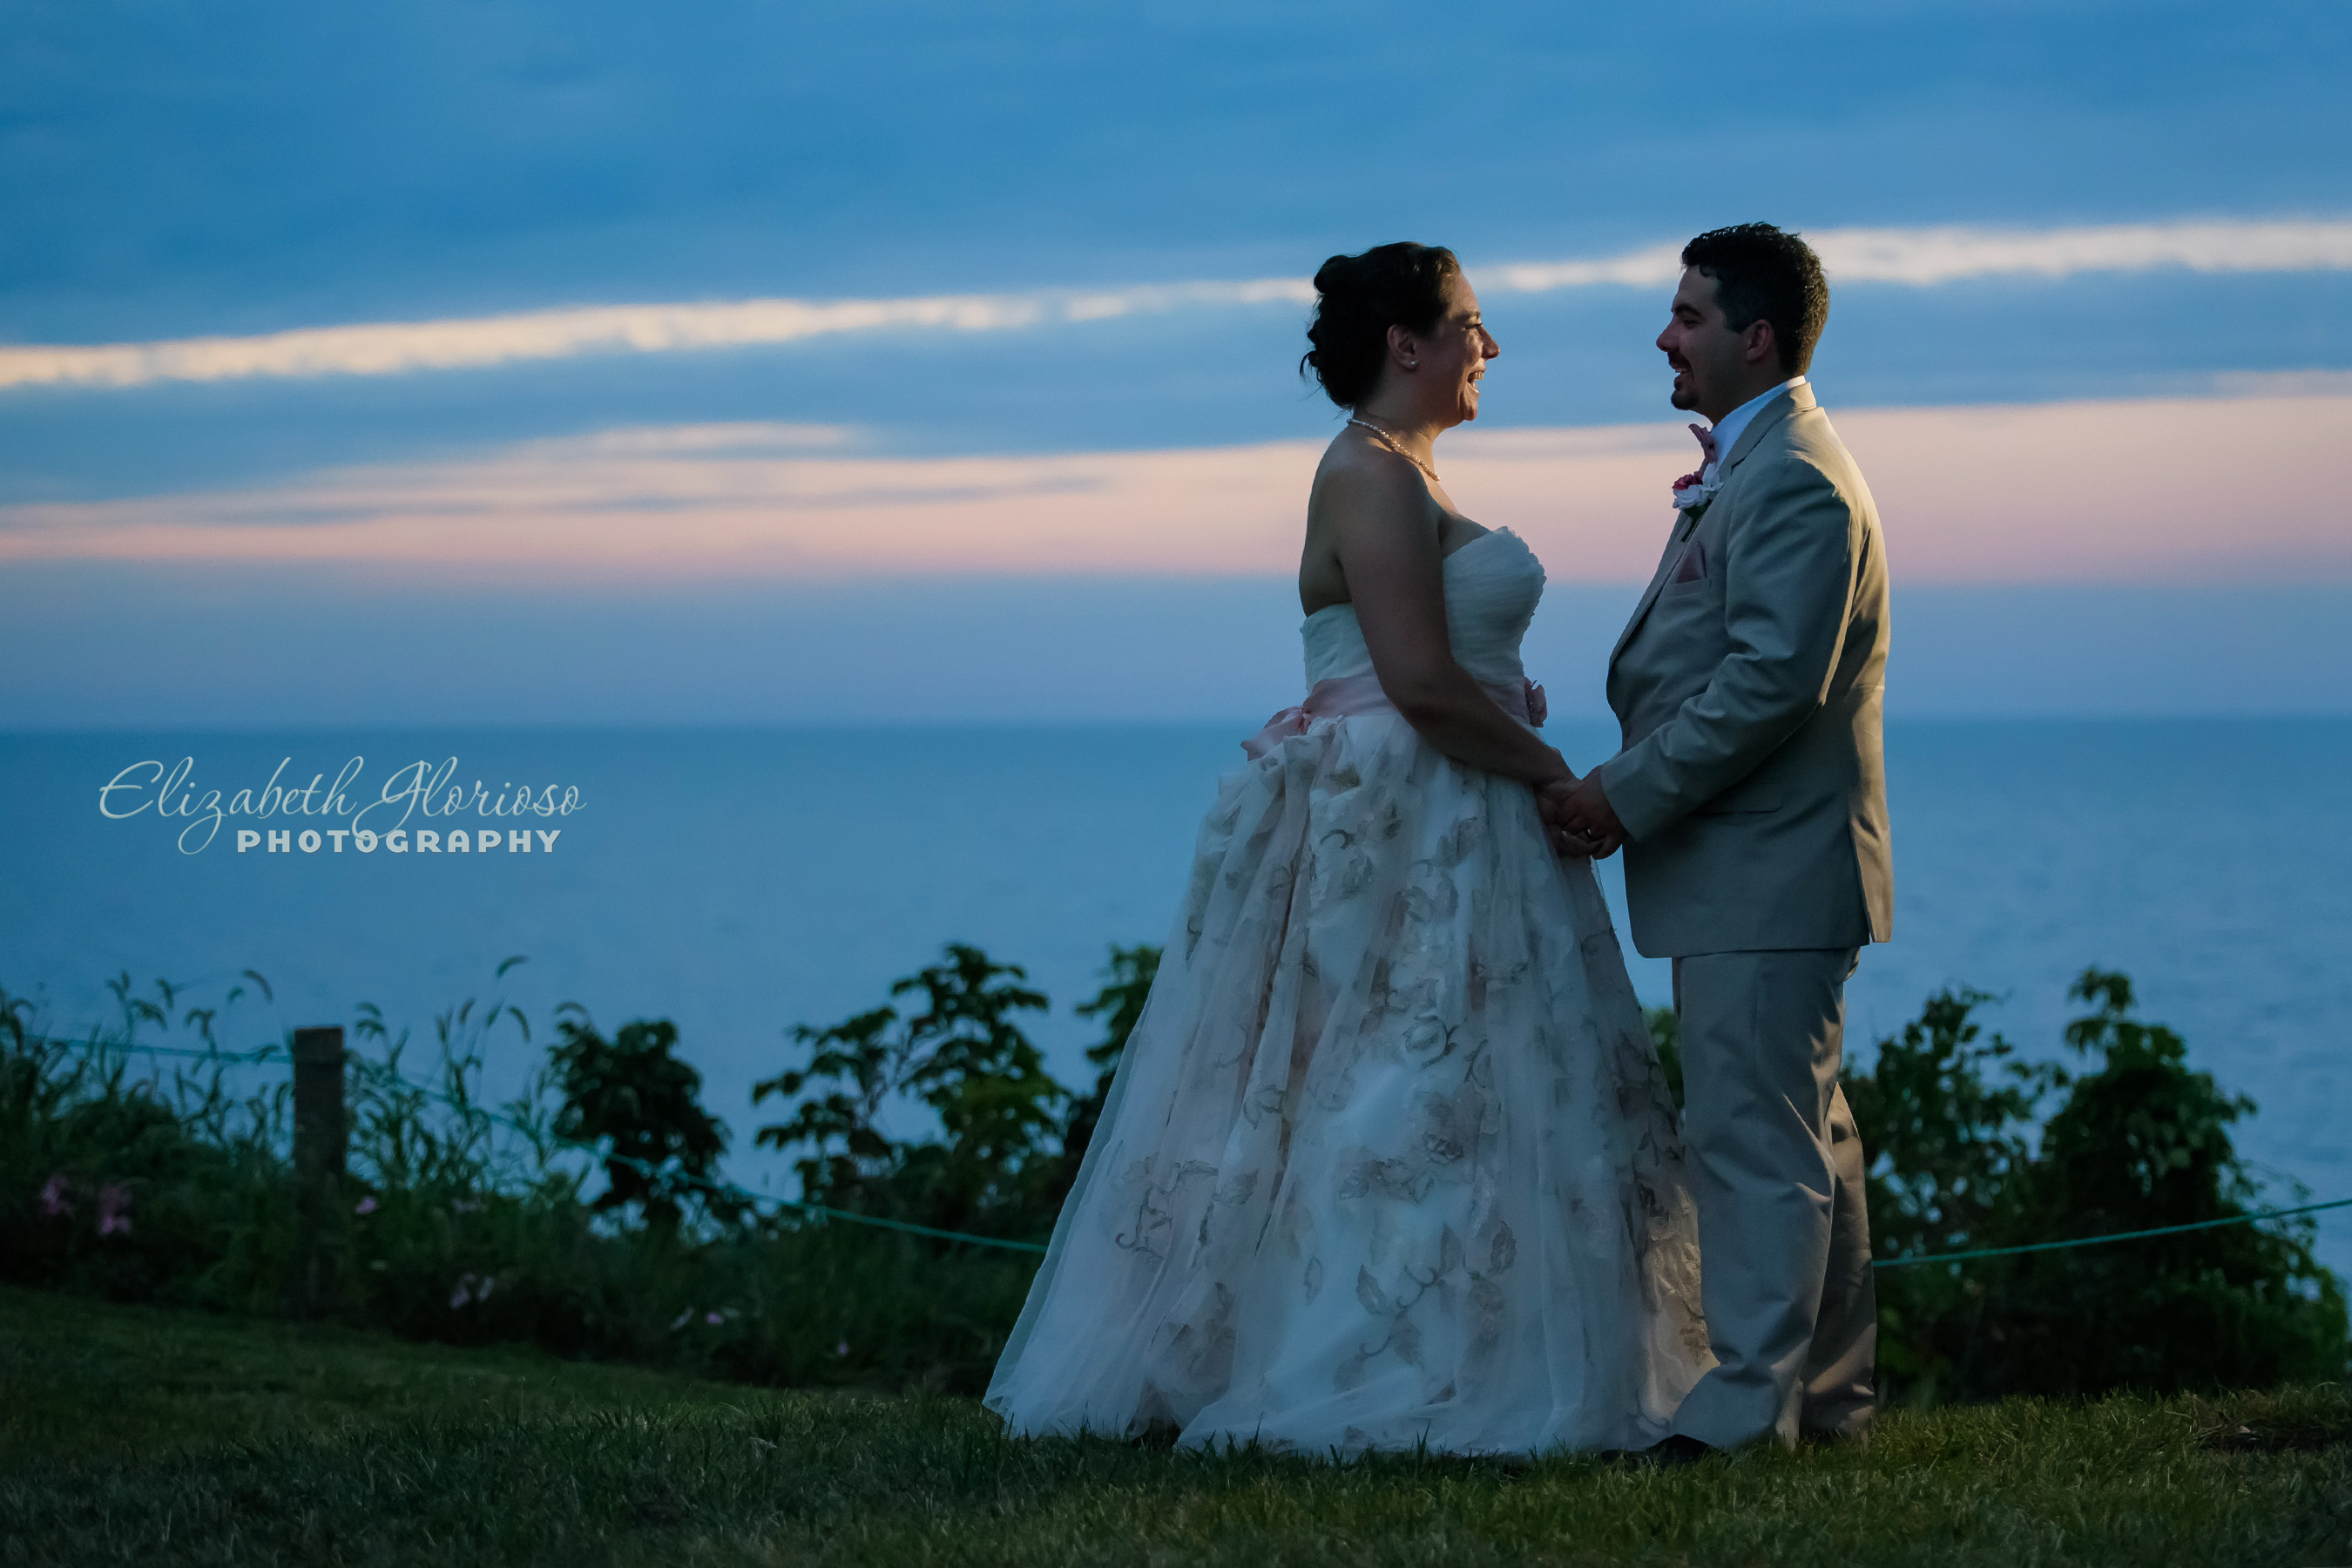 Vermilion_wedding_Glorioso Photography_1049